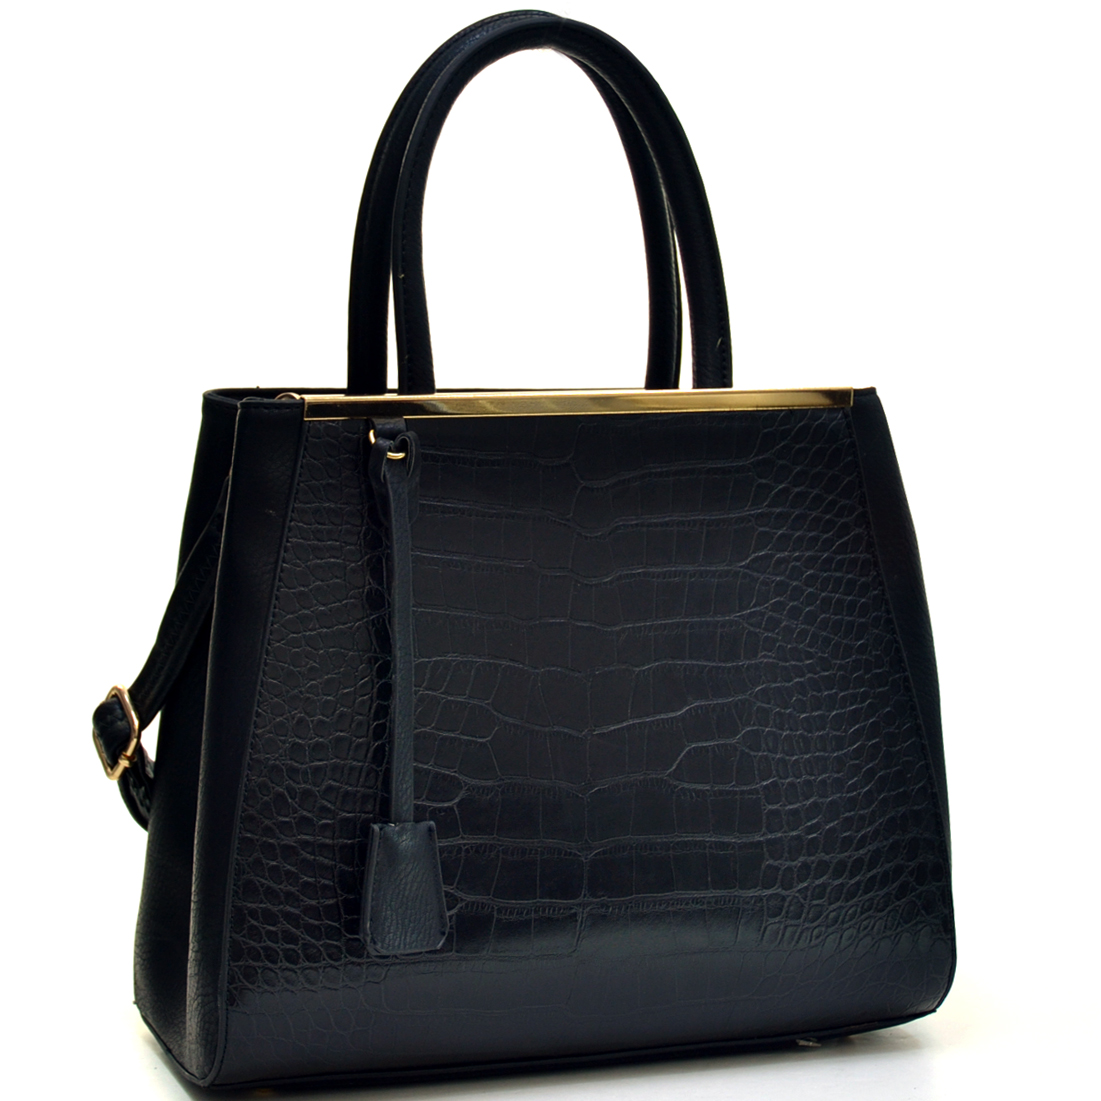 Two Tone Croc Tote w/Removable Shoulder Strap